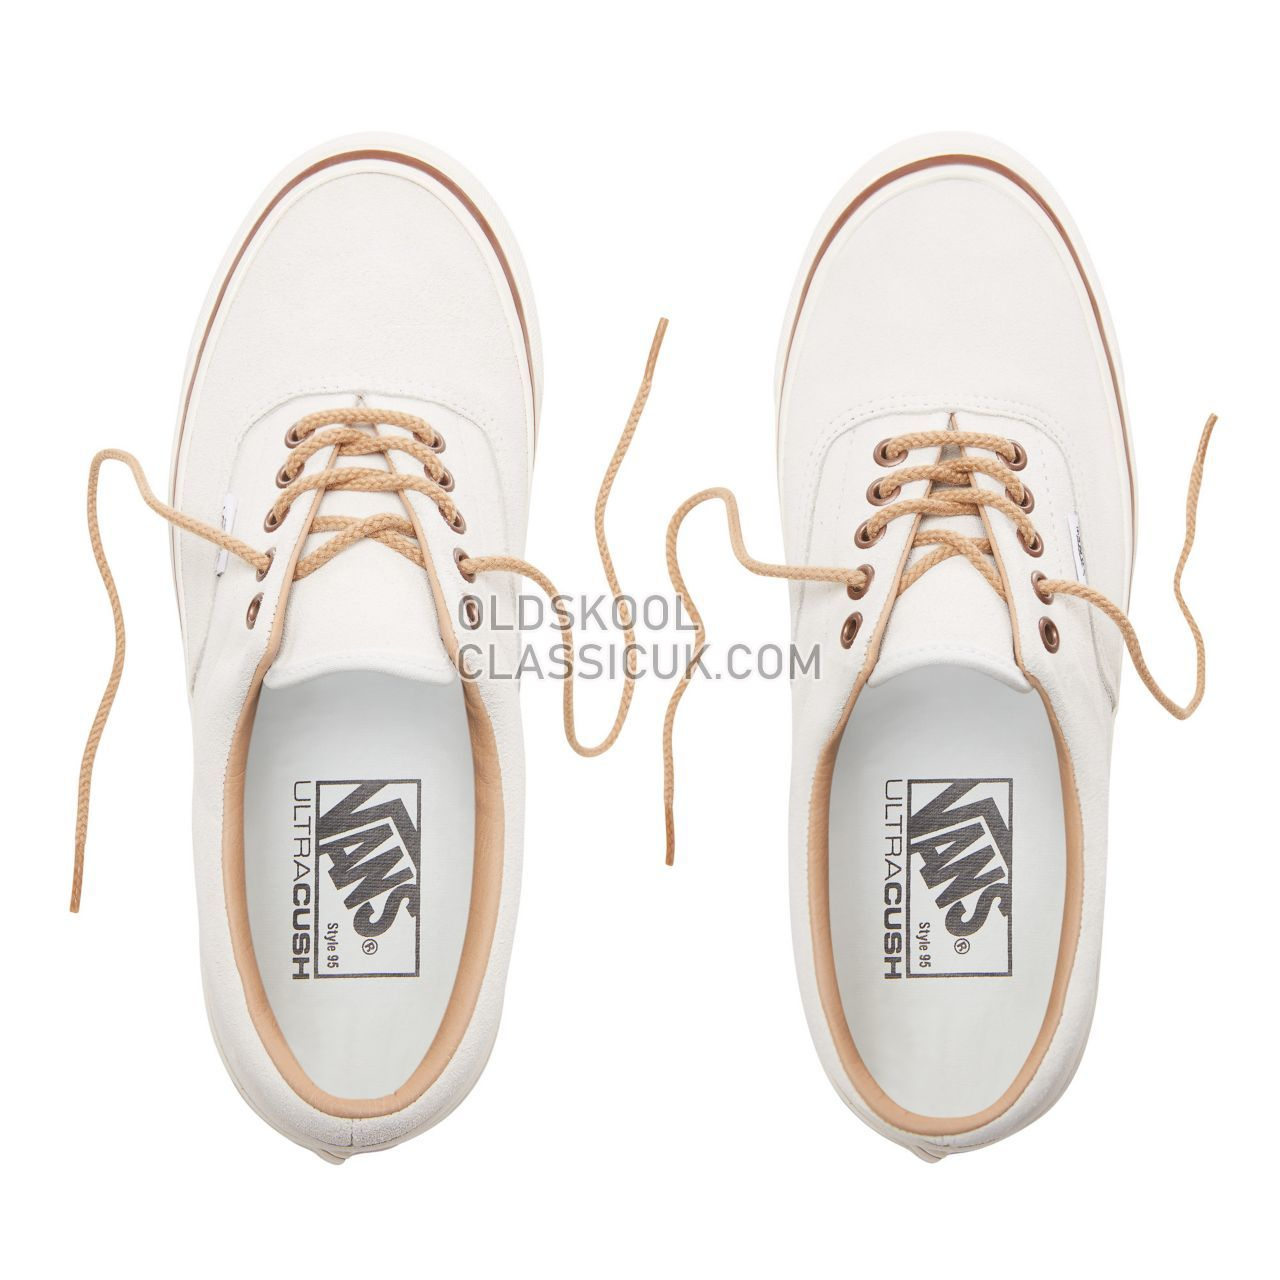 Vans Anaheim Factory Era 95 Dx Sneakers Mens (Anaheim Factory) Og White/Suede VN0A2RR1UL4 Shoes